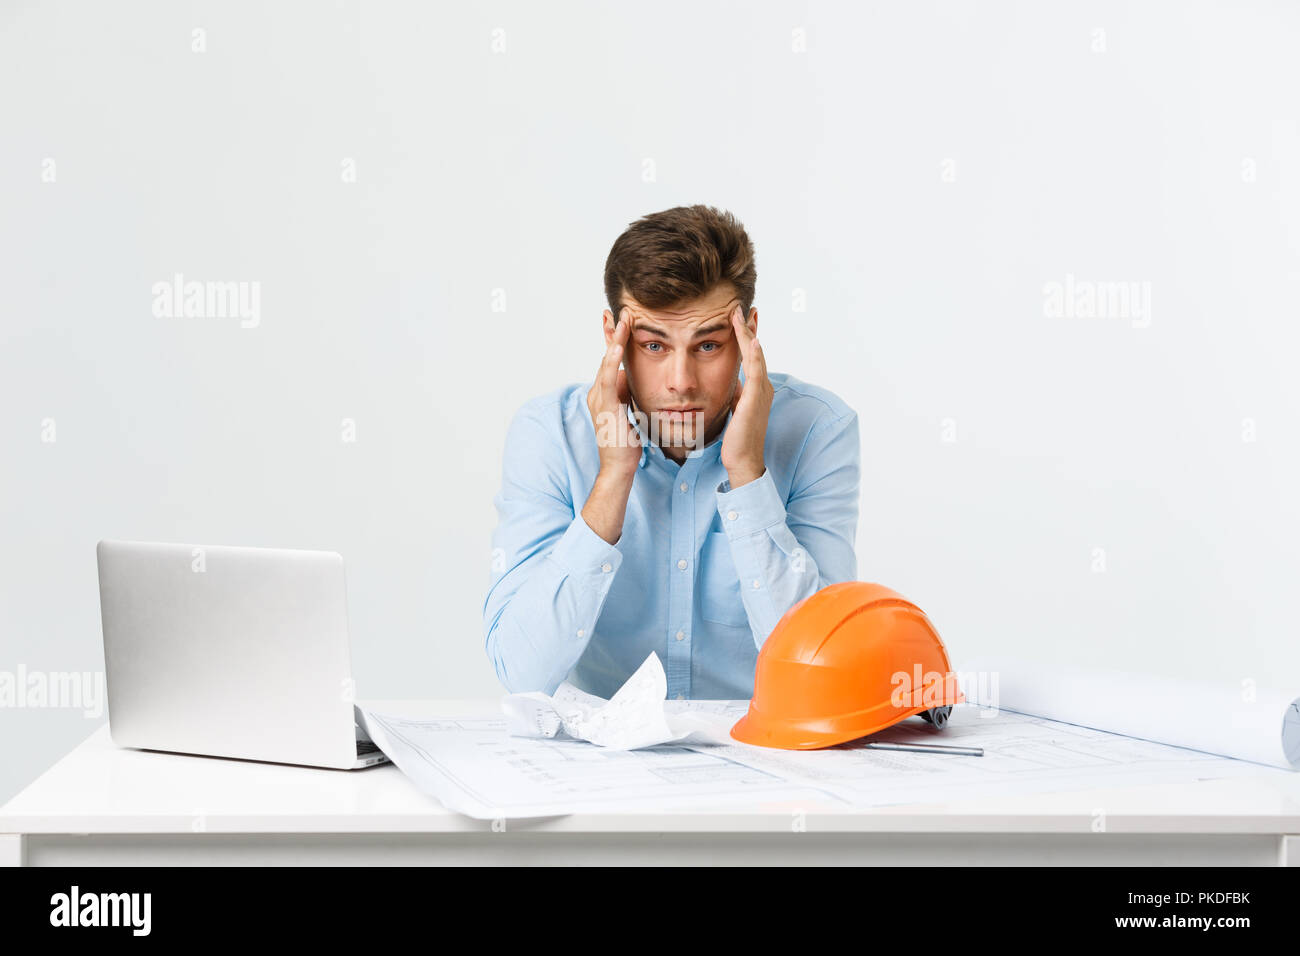 Portrait of engineer stress holding his head with hand sitting at the table and feel headache in the office on isolated background. Engineering concept. - Stock Image